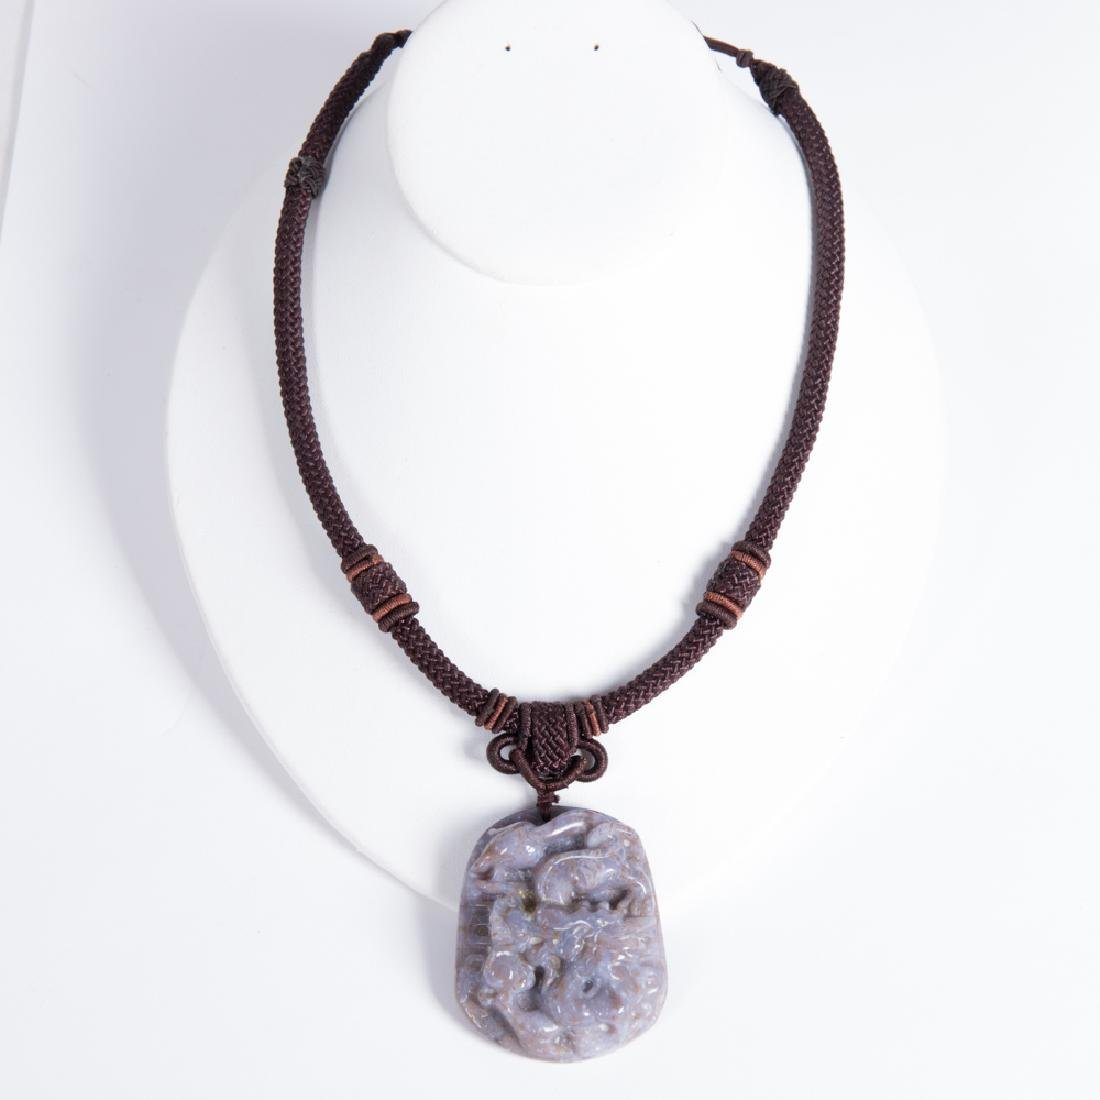 A Carved Lavender and Russet Jade Pendant on Rope